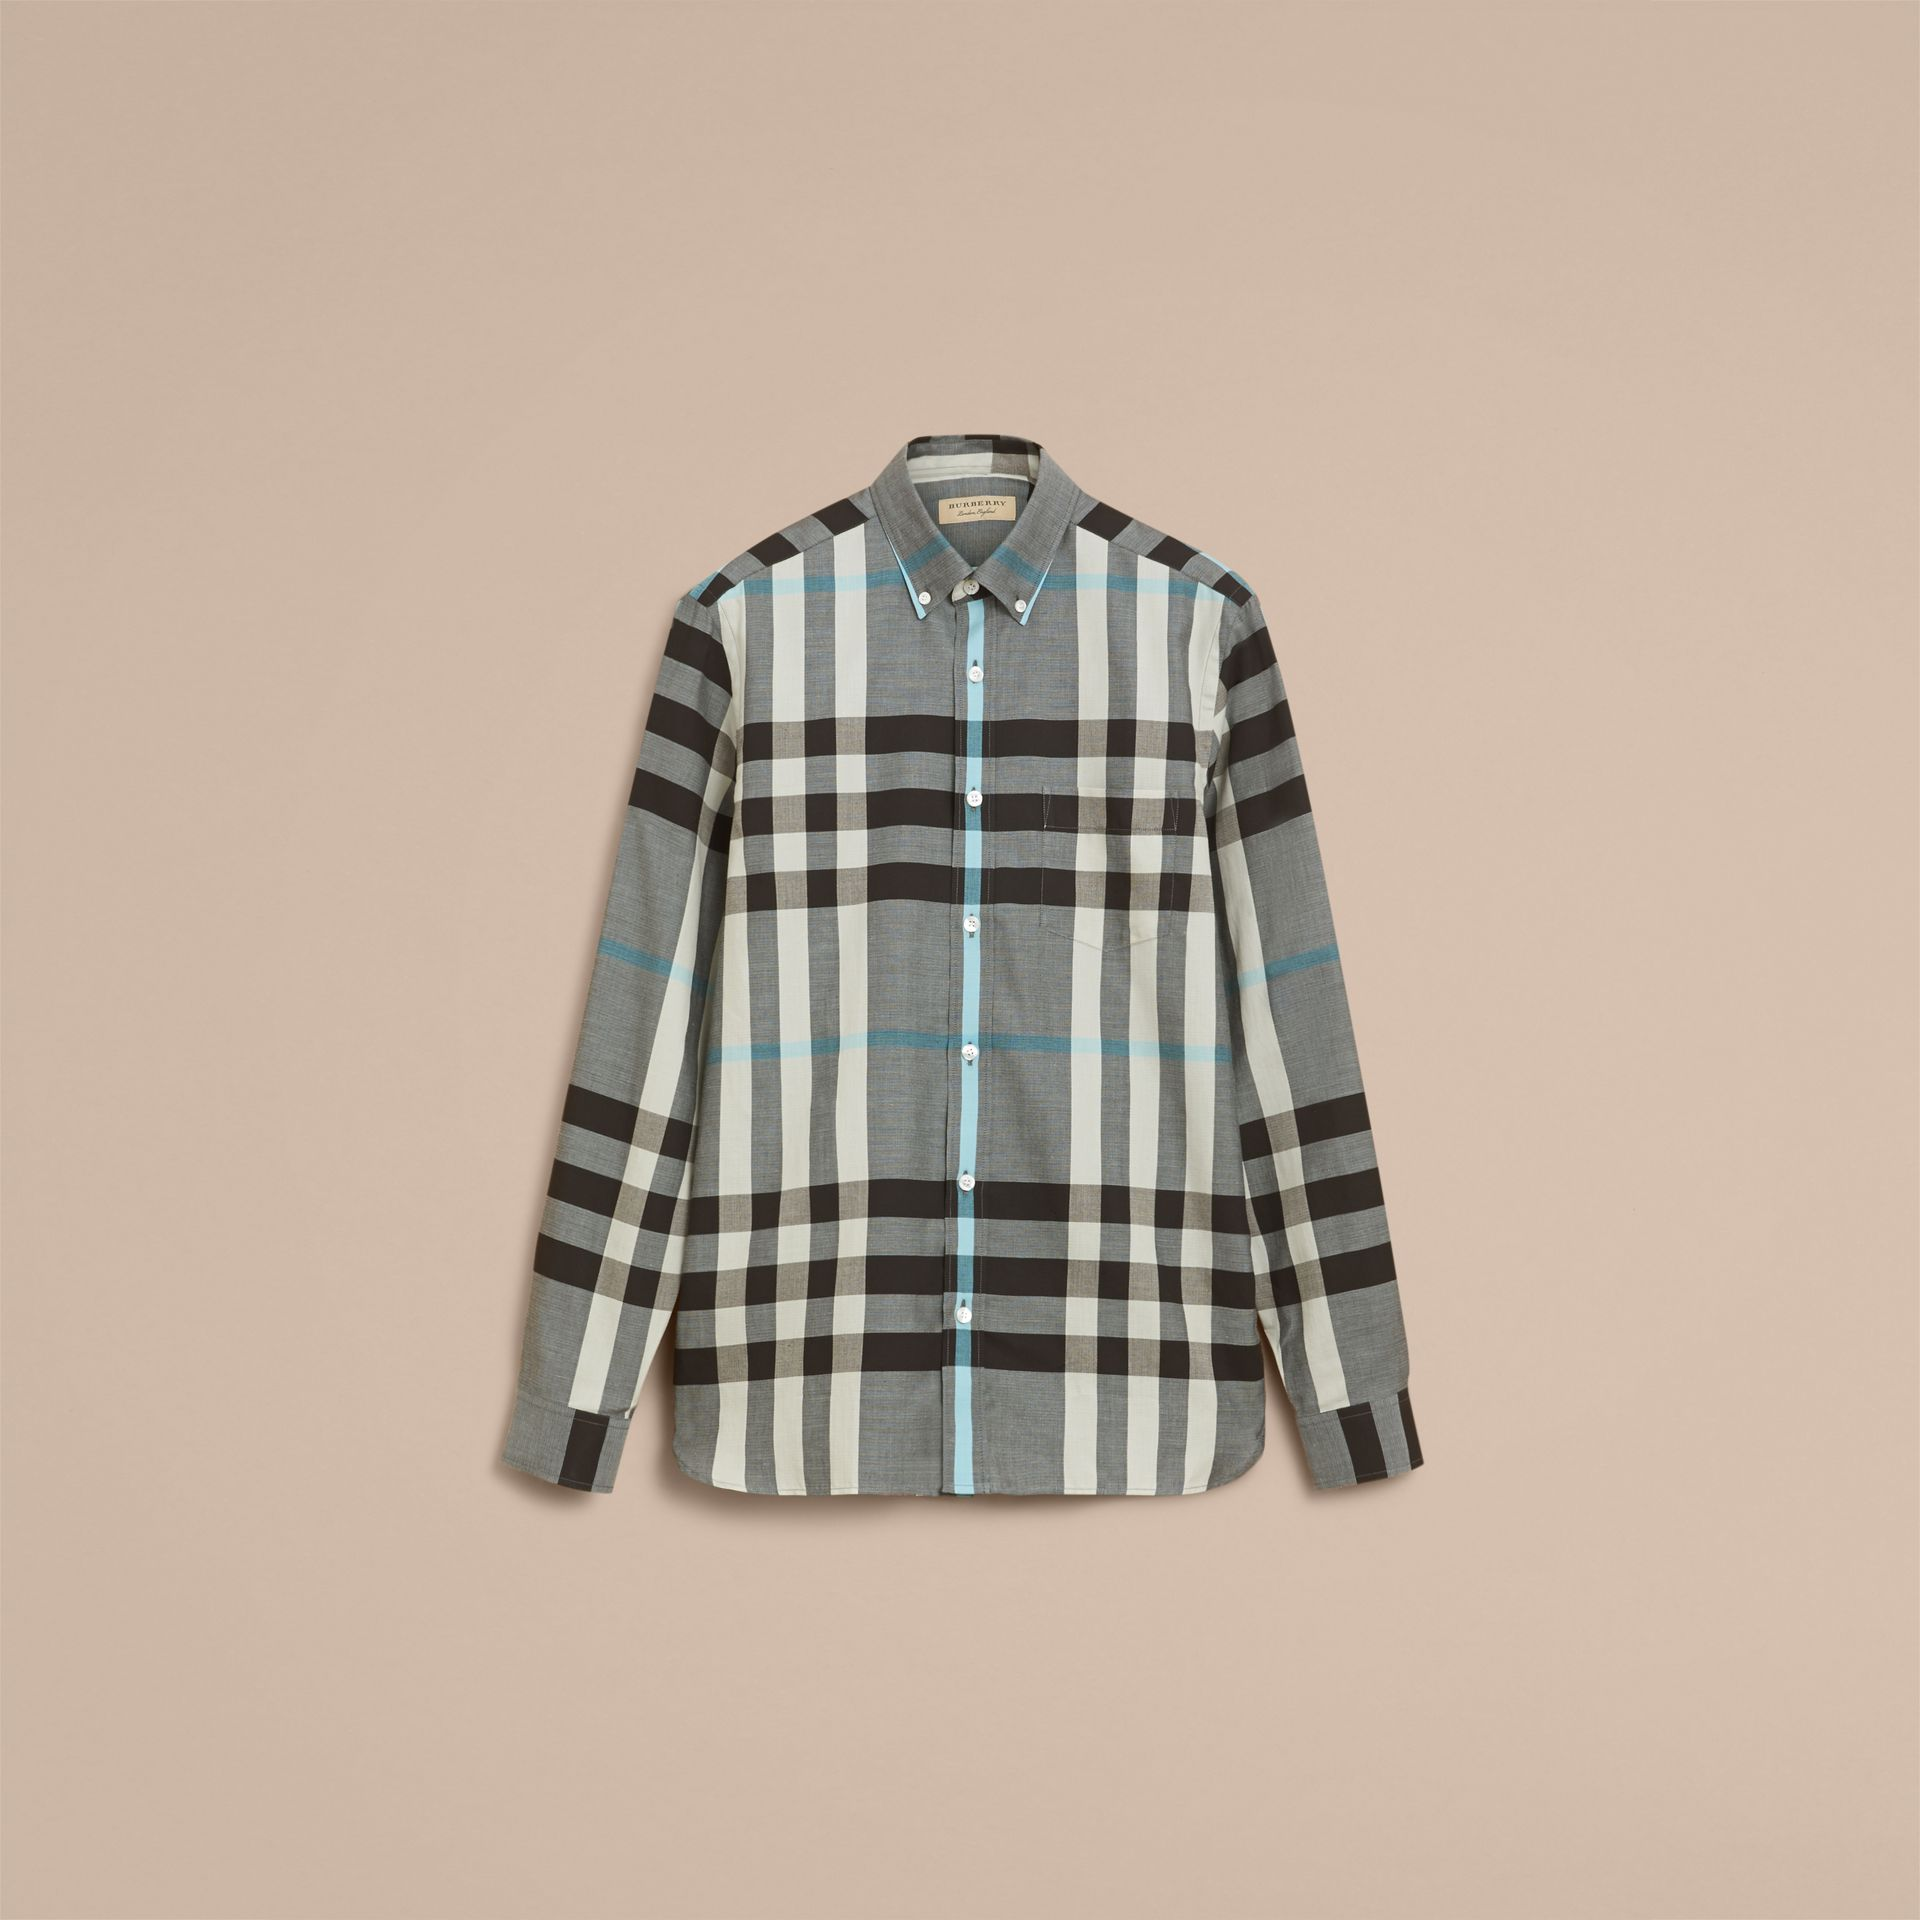 Button-down Collar Check Cotton Poplin Shirt in Mist Grey - Men | Burberry - gallery image 4